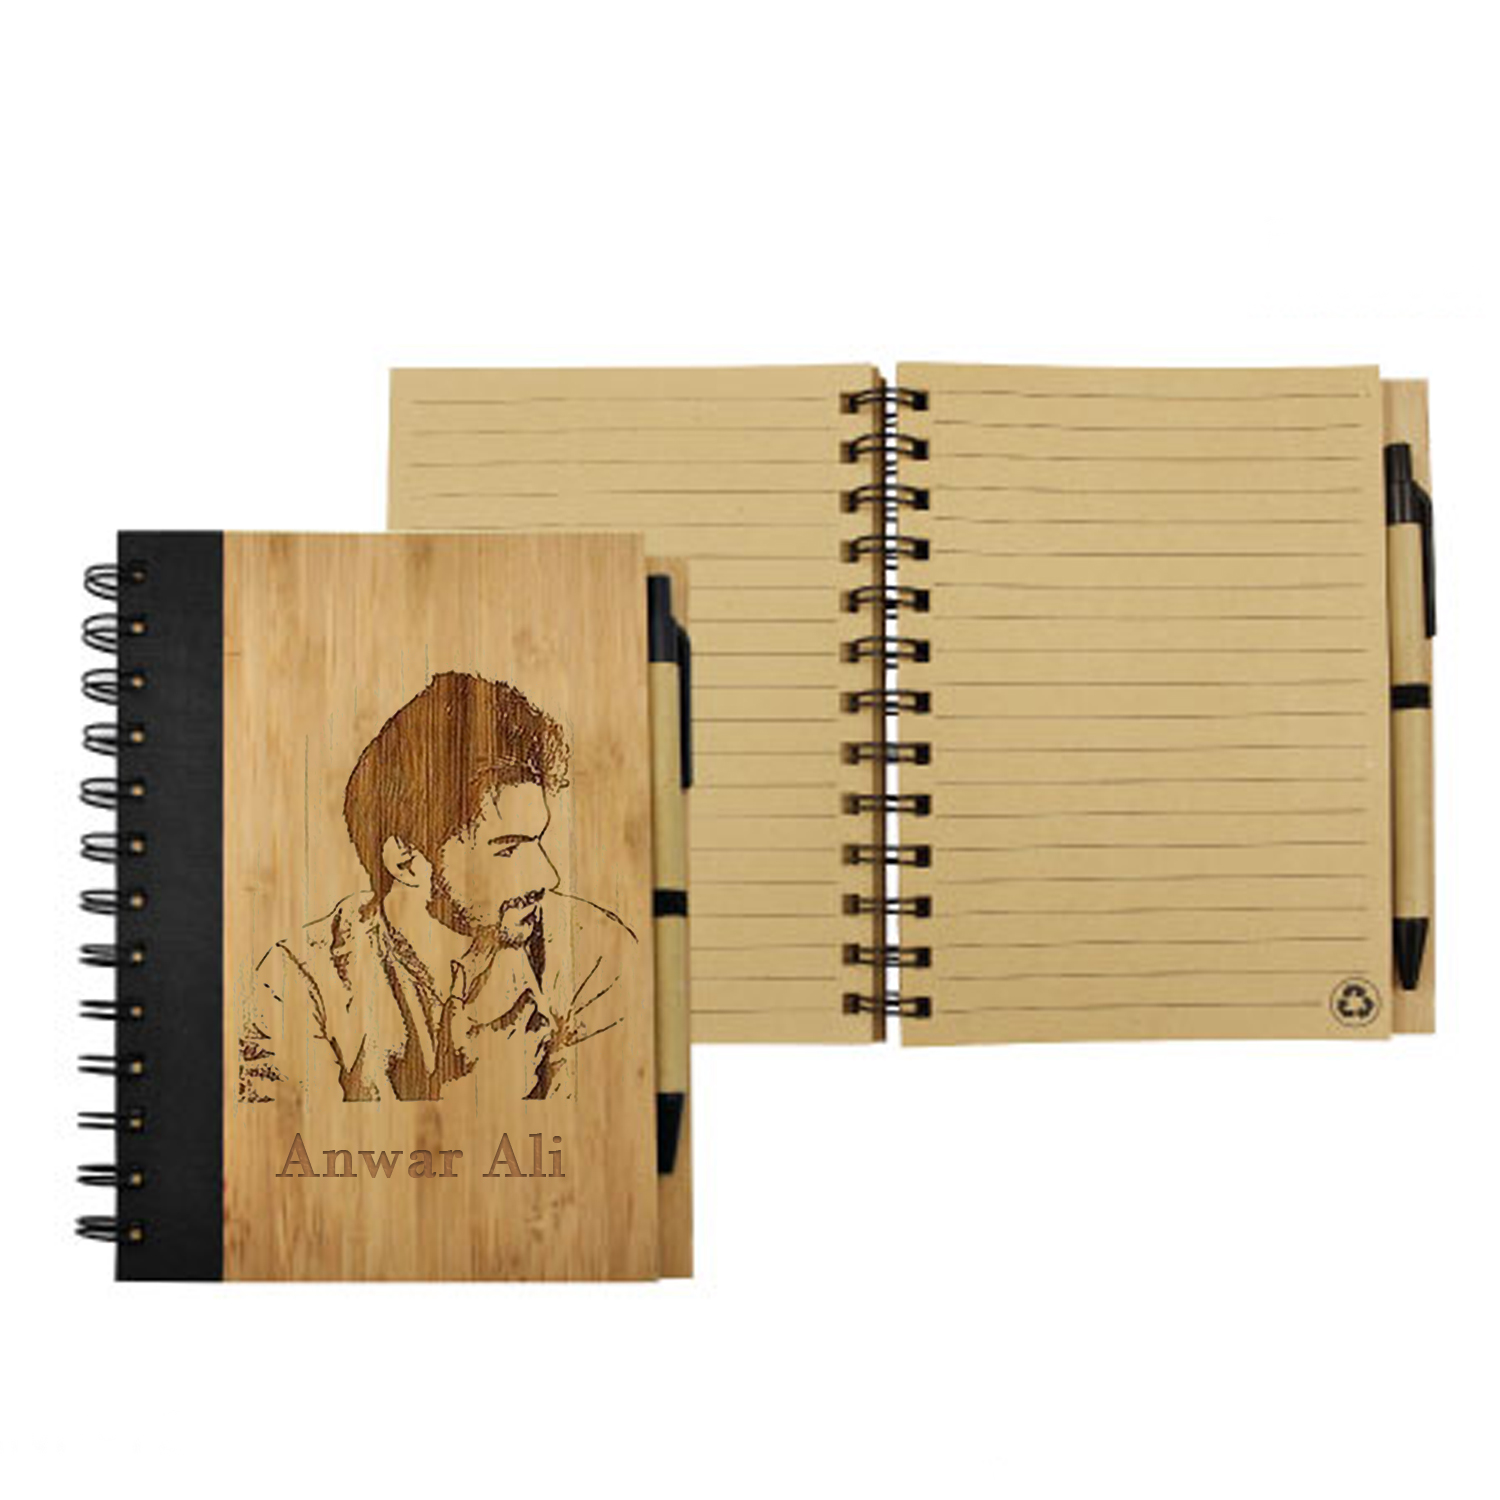 Photo Engraved Bamboo Notebook With Pen: Gifts for him